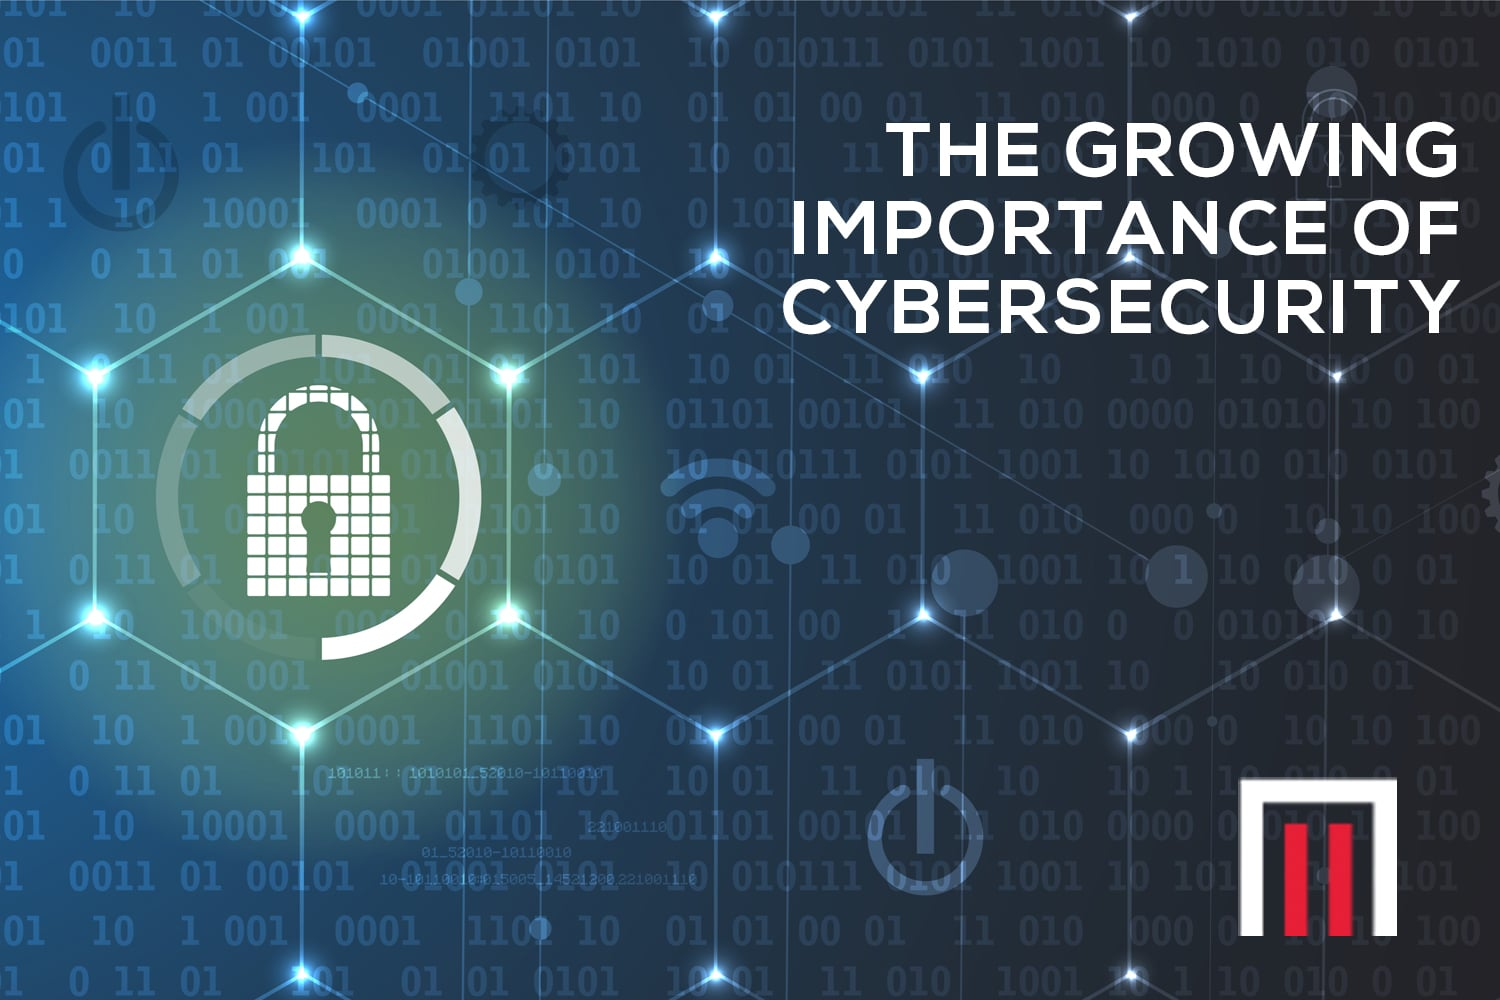 The growing importance of cybersecurity